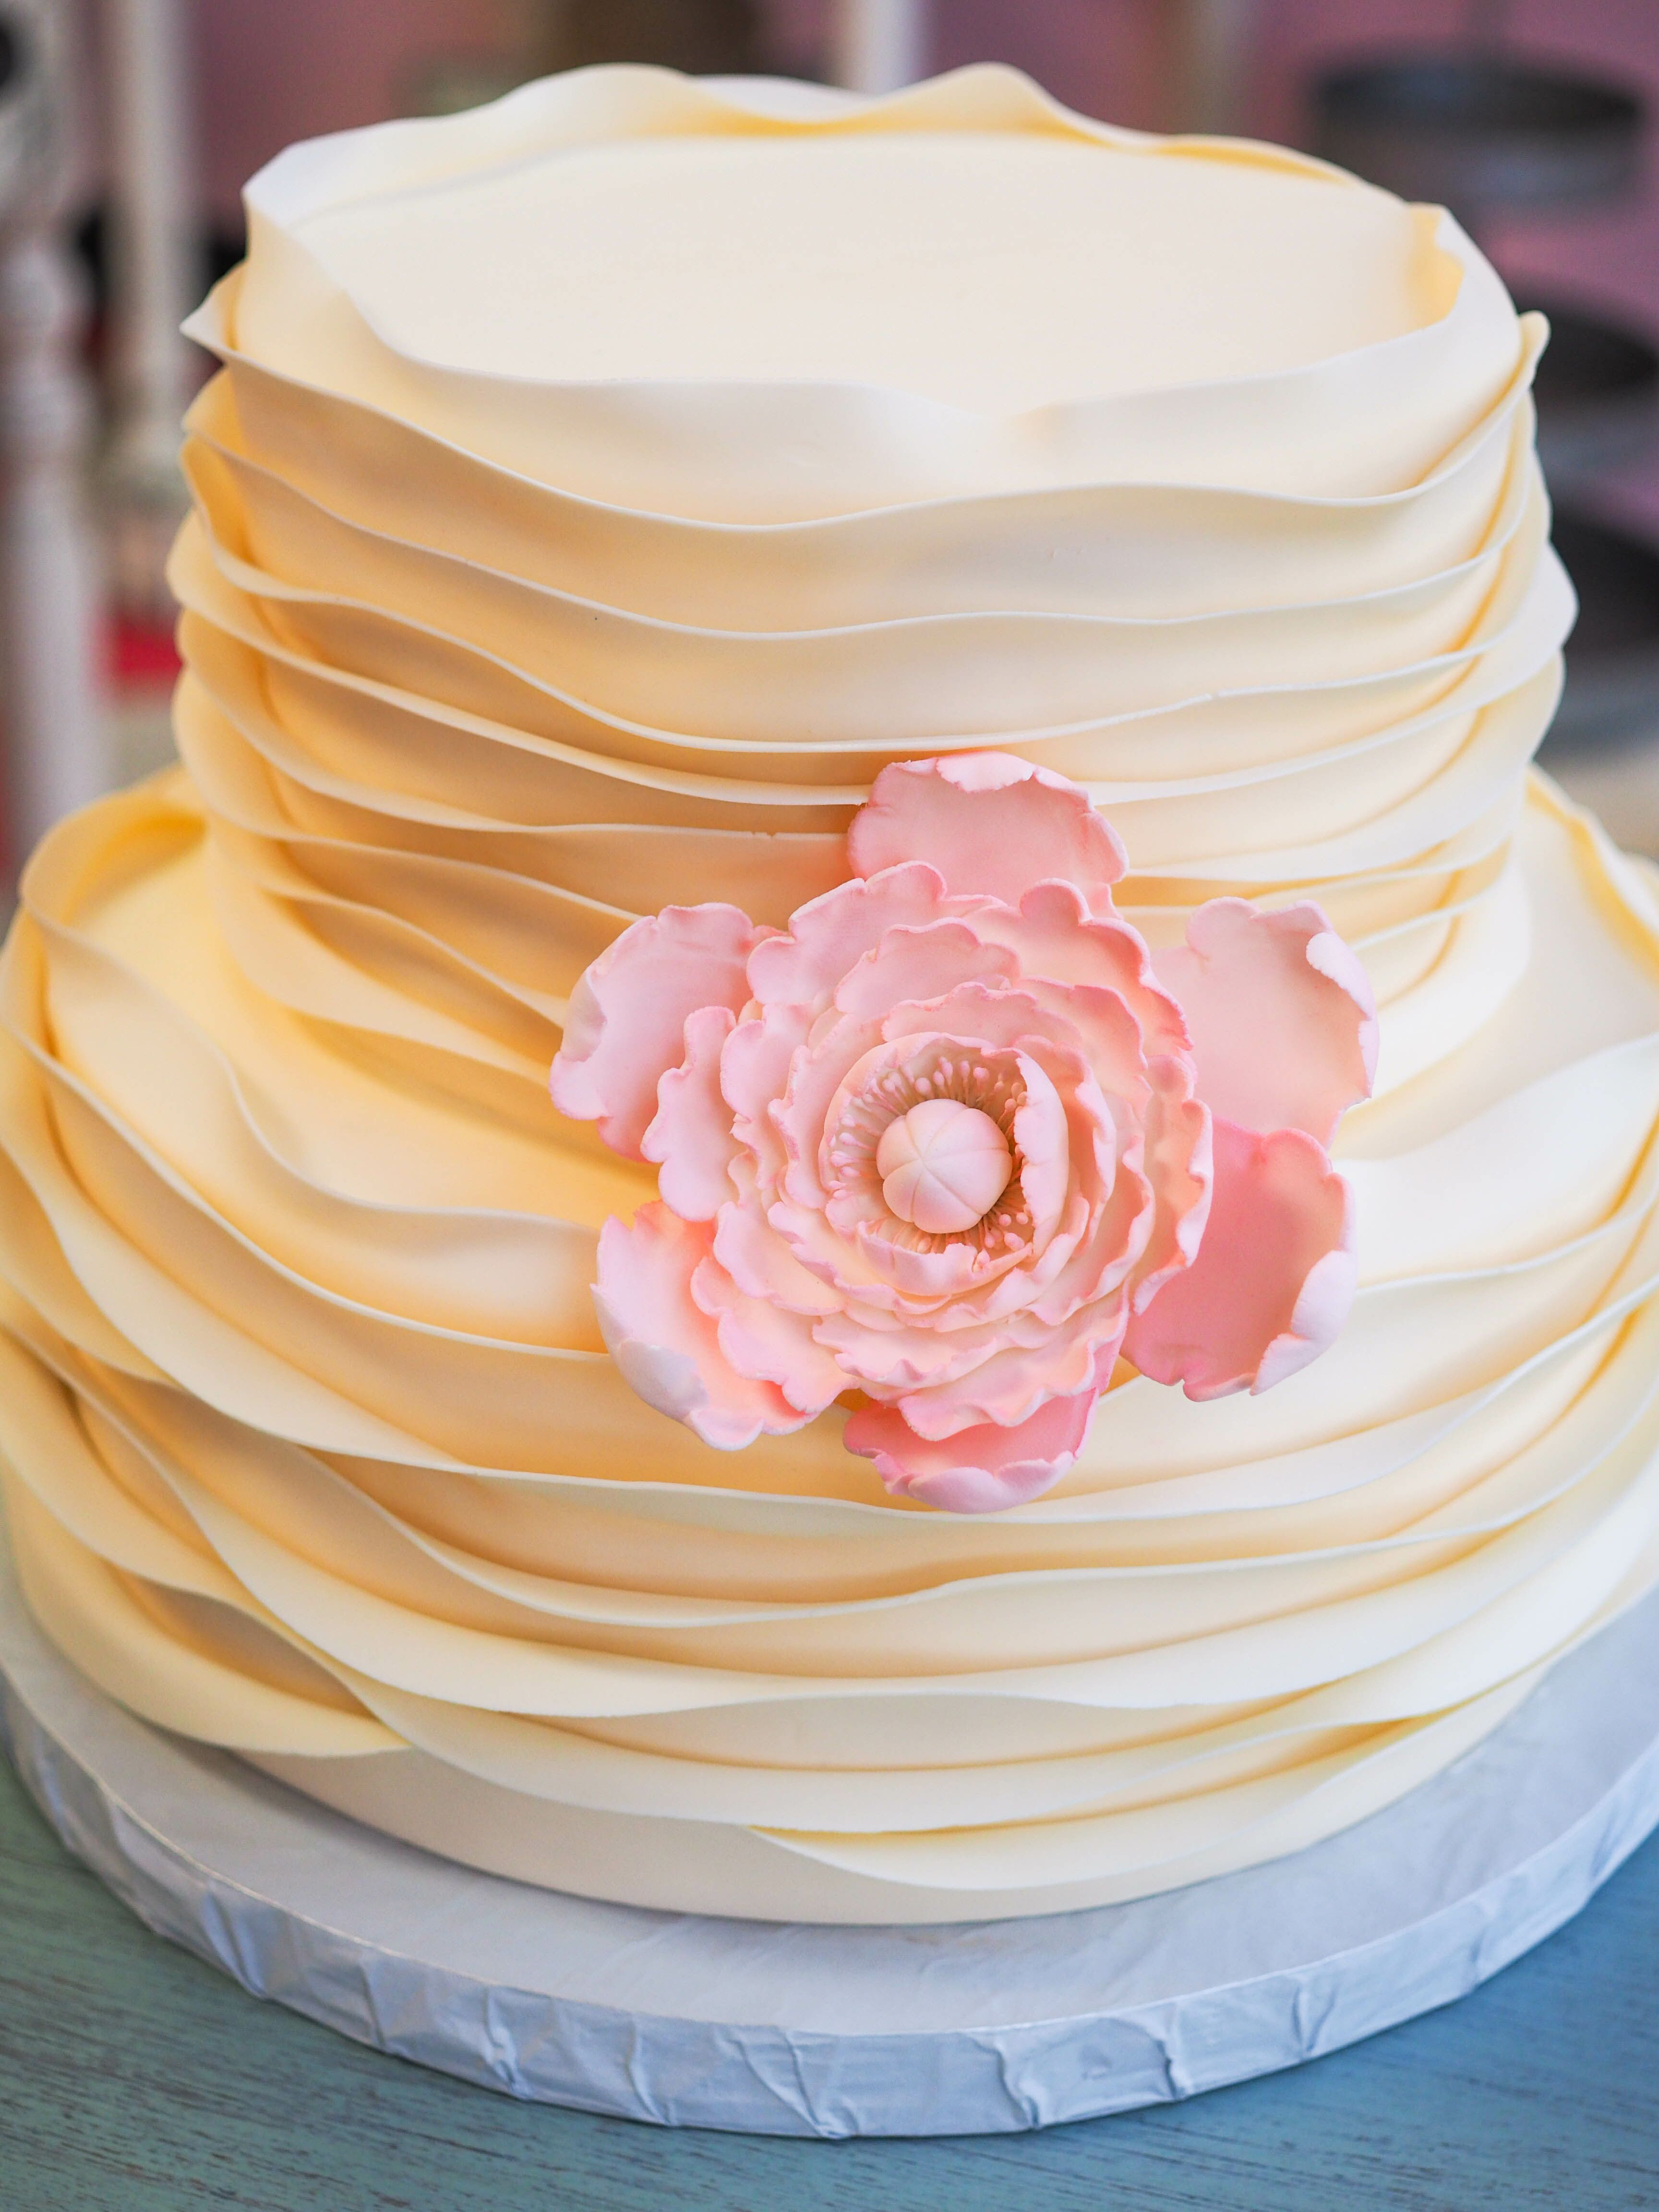 Wedding Cake Bakeries in Austin, TX - The Knot